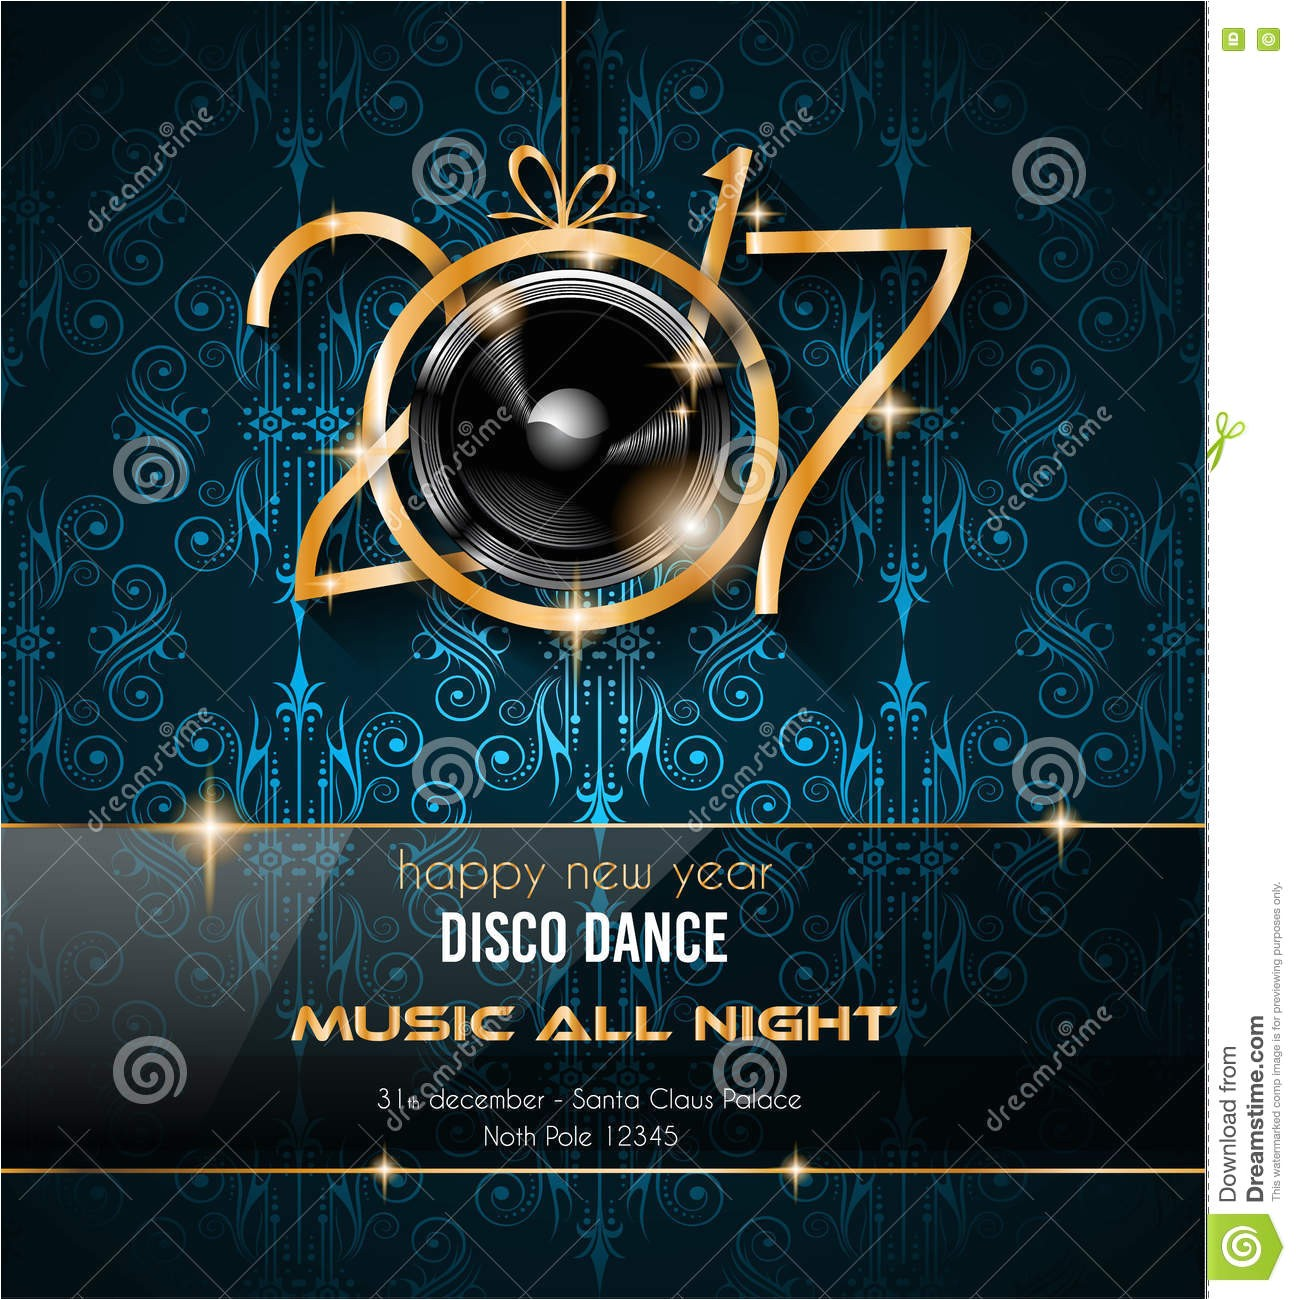 stock illustration happy new year disco party background your flyers greetings card ideal to use parties invitation dinner invitation image74510929